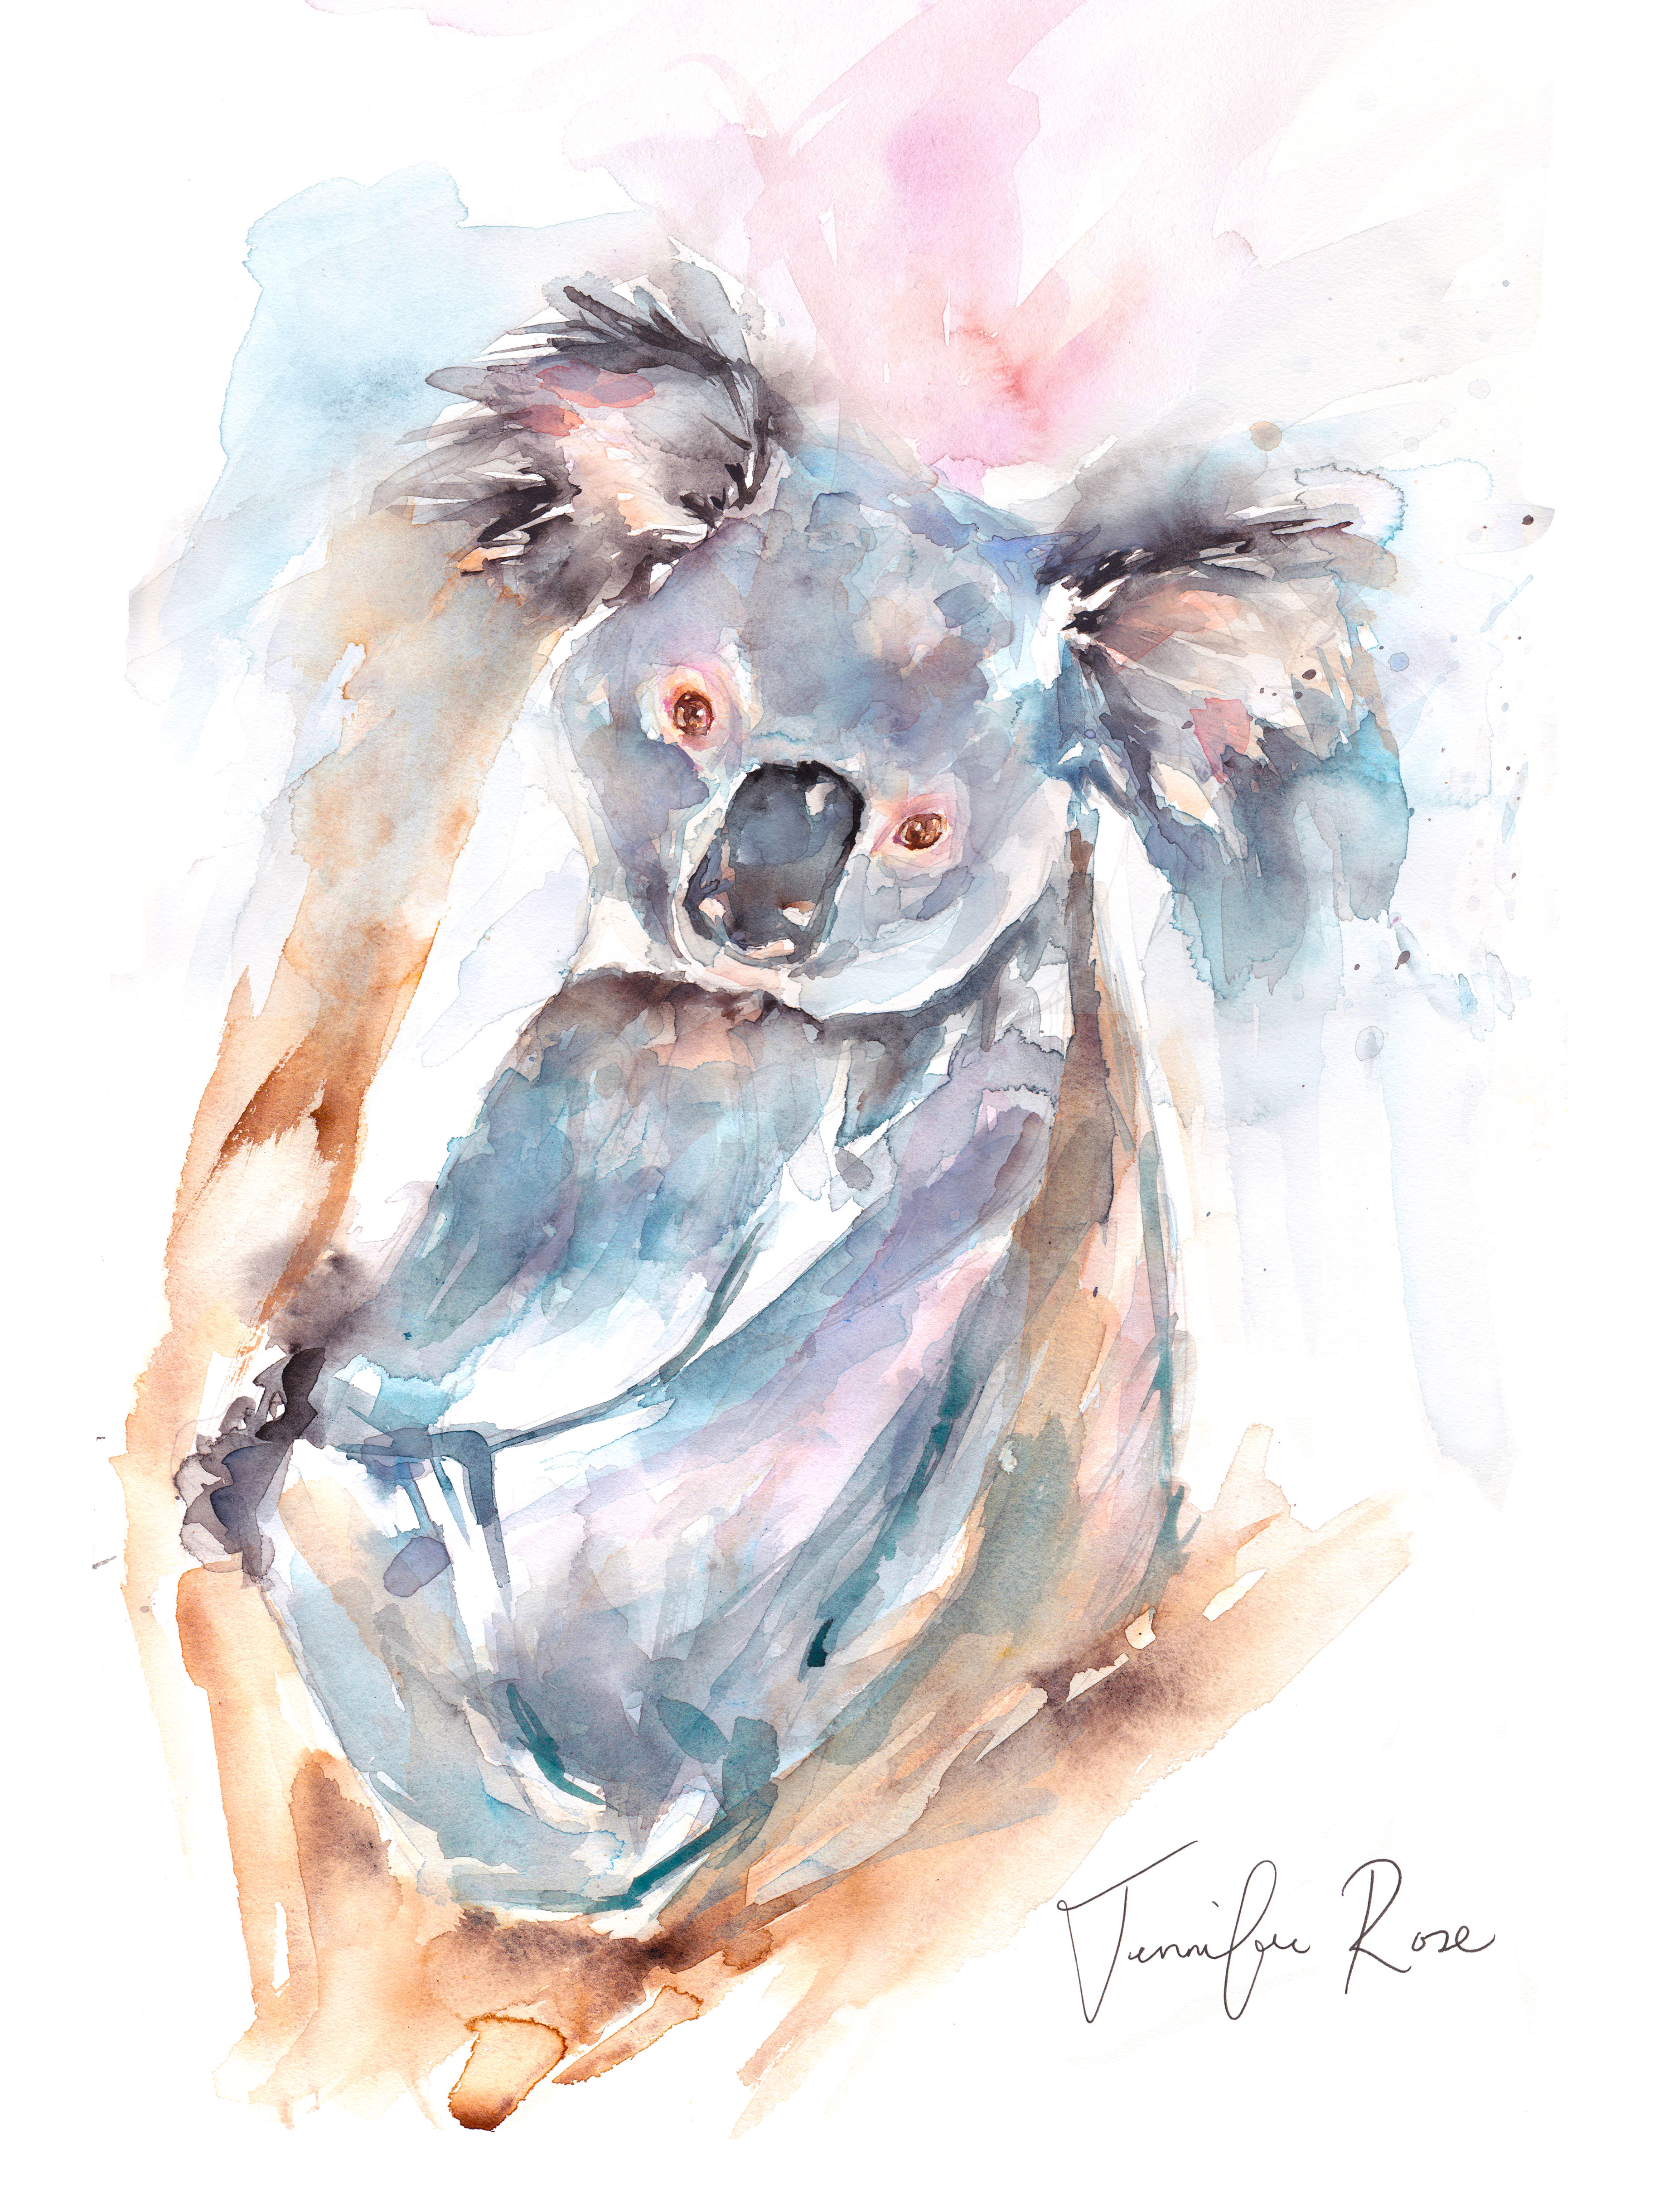 Above: Jennifer Rose Gallery's watercolour koala is available on cards.